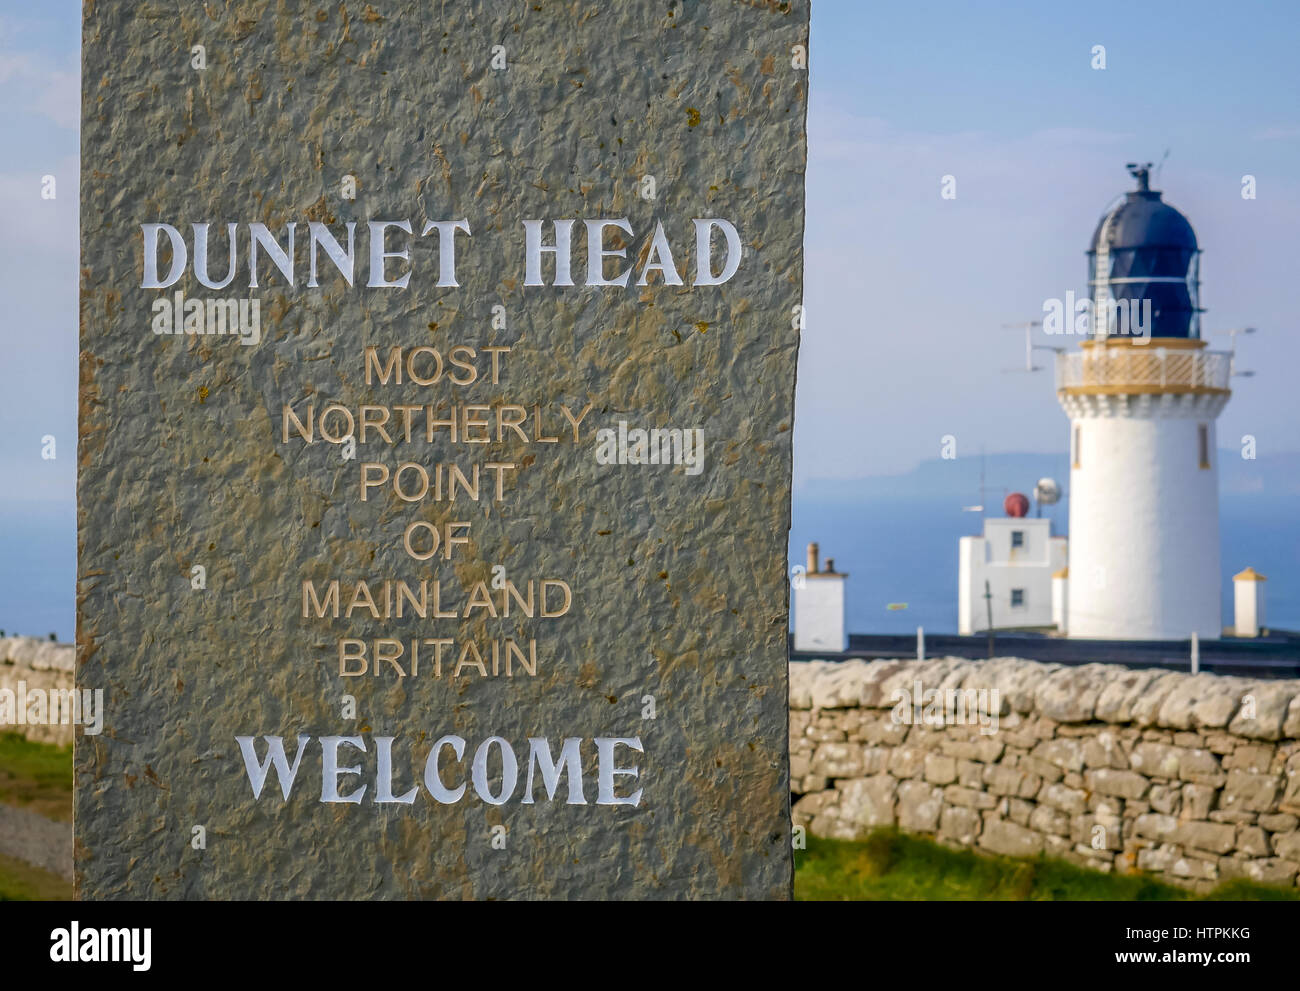 Welcome sign, Dunnet Head, most Northerly point of mainland Britain, Scotland, UK - Stock Image